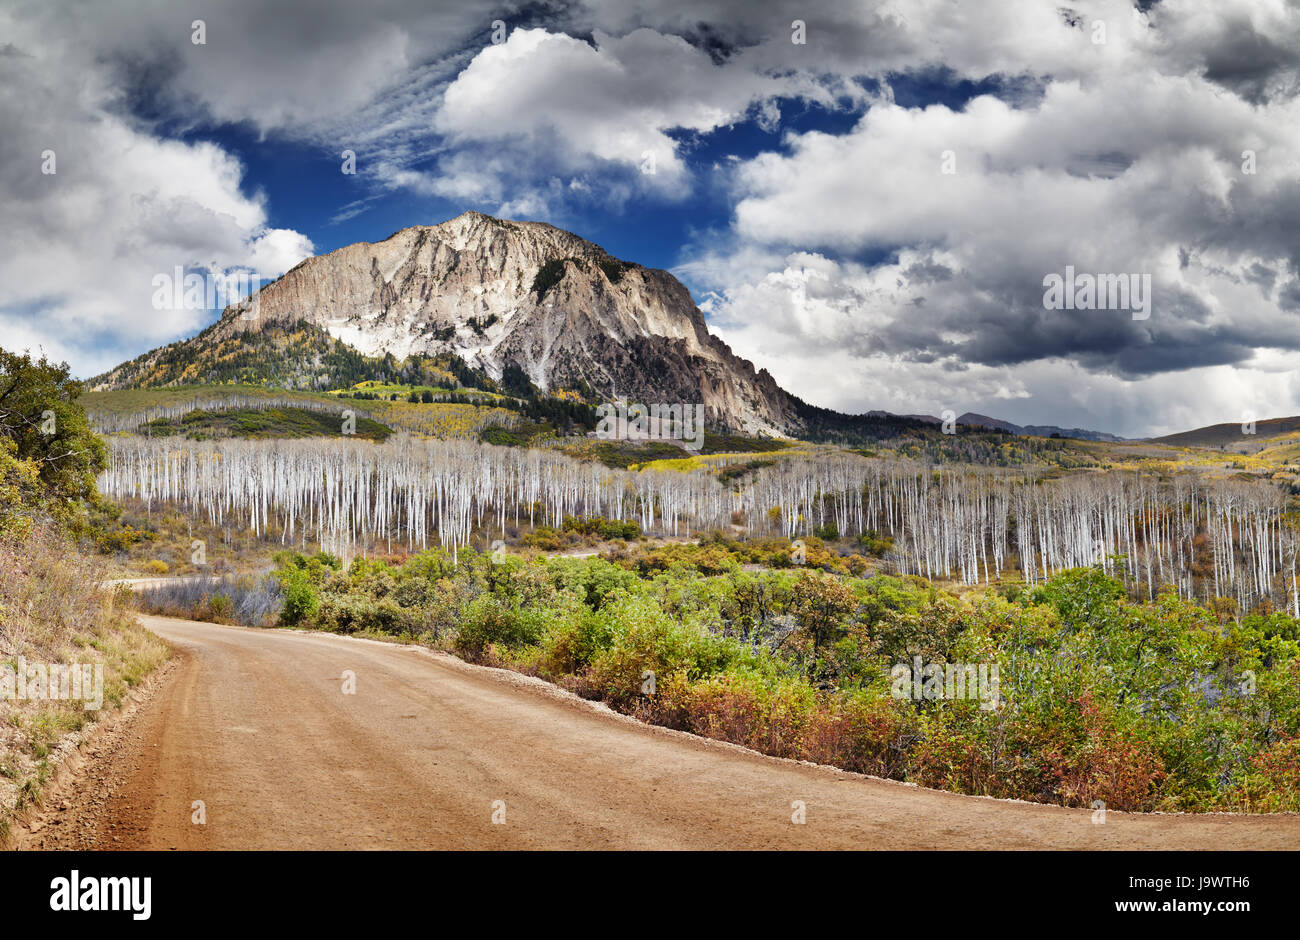 Kebler Pass e Marcellina Mountain View, Crested Butte, Colorado, STATI UNITI D'AMERICA Immagini Stock